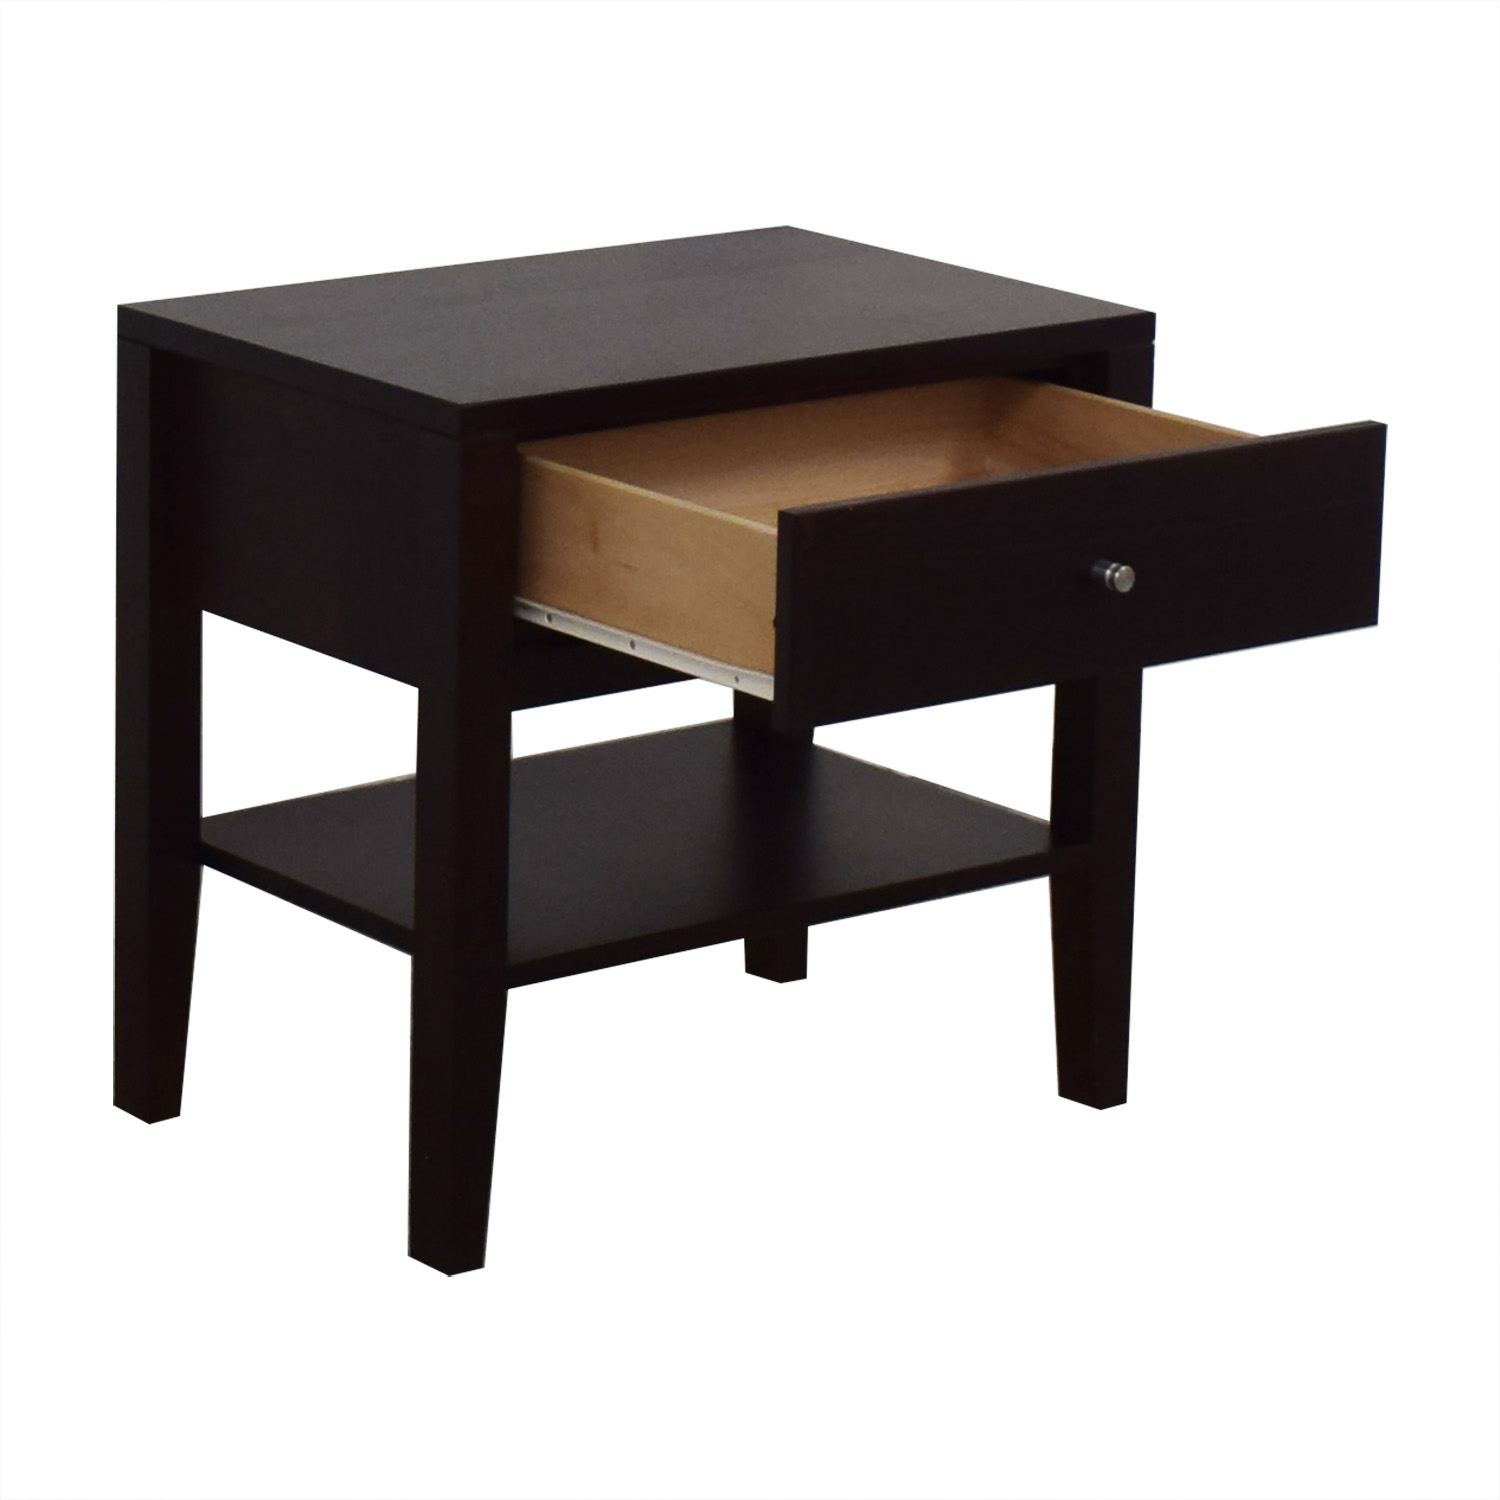 Room & Board Calvin Nightstand sale